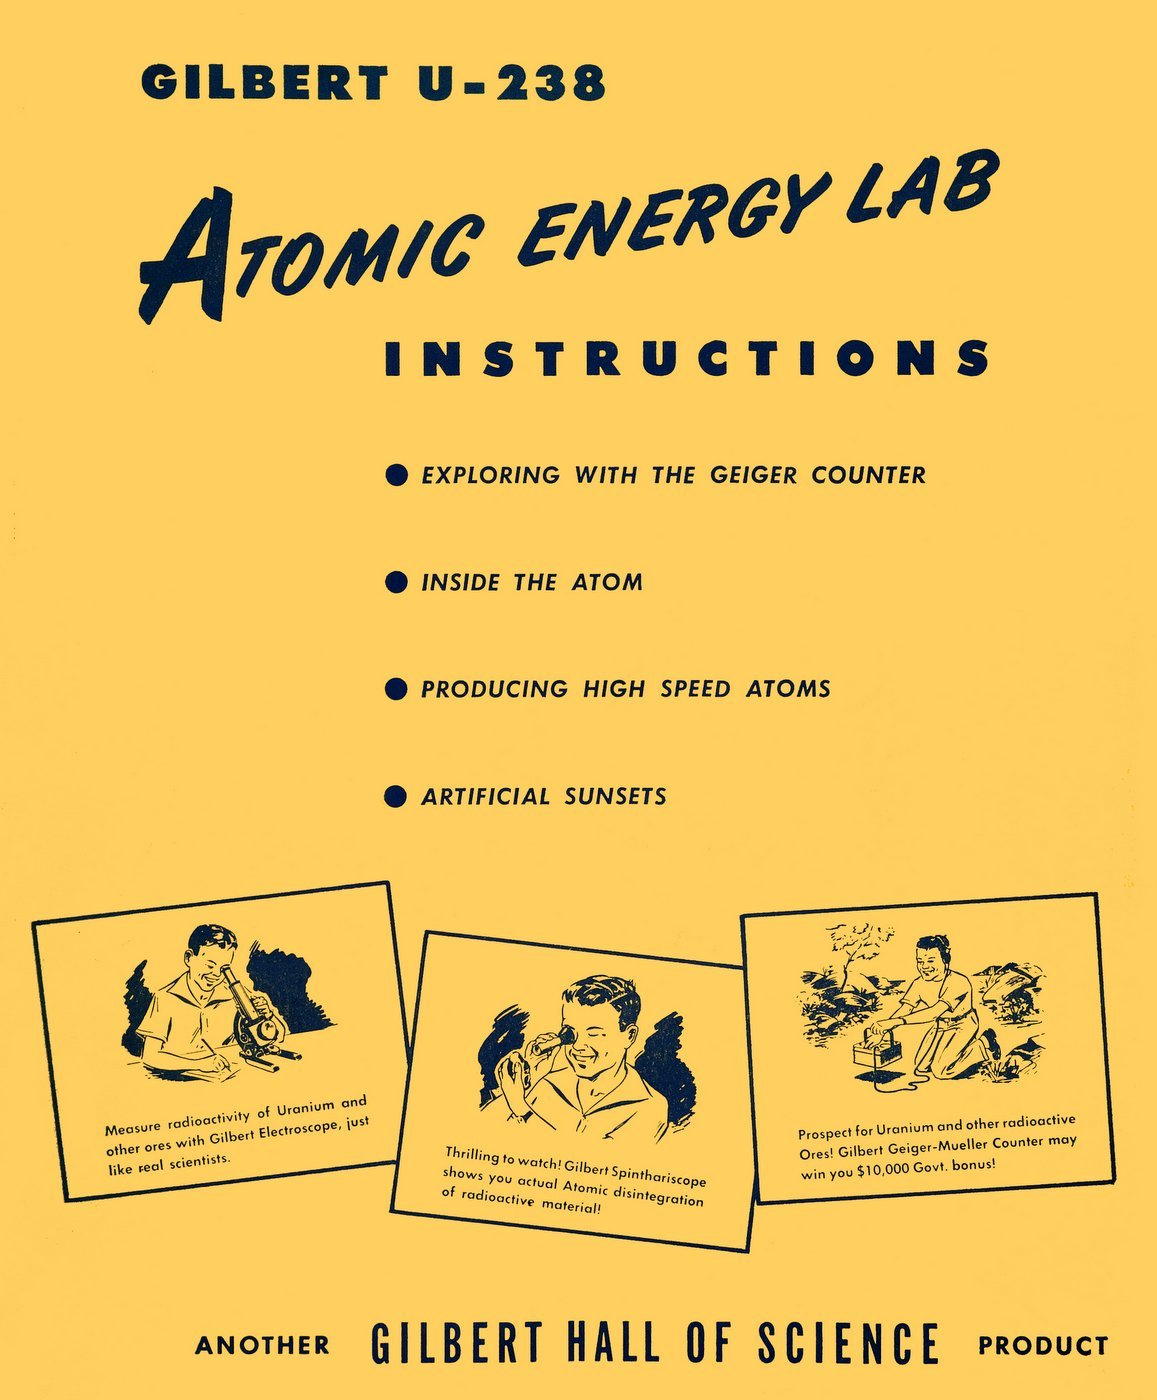 Gilbert nuclear physics atomic energy lab 1951 instructions